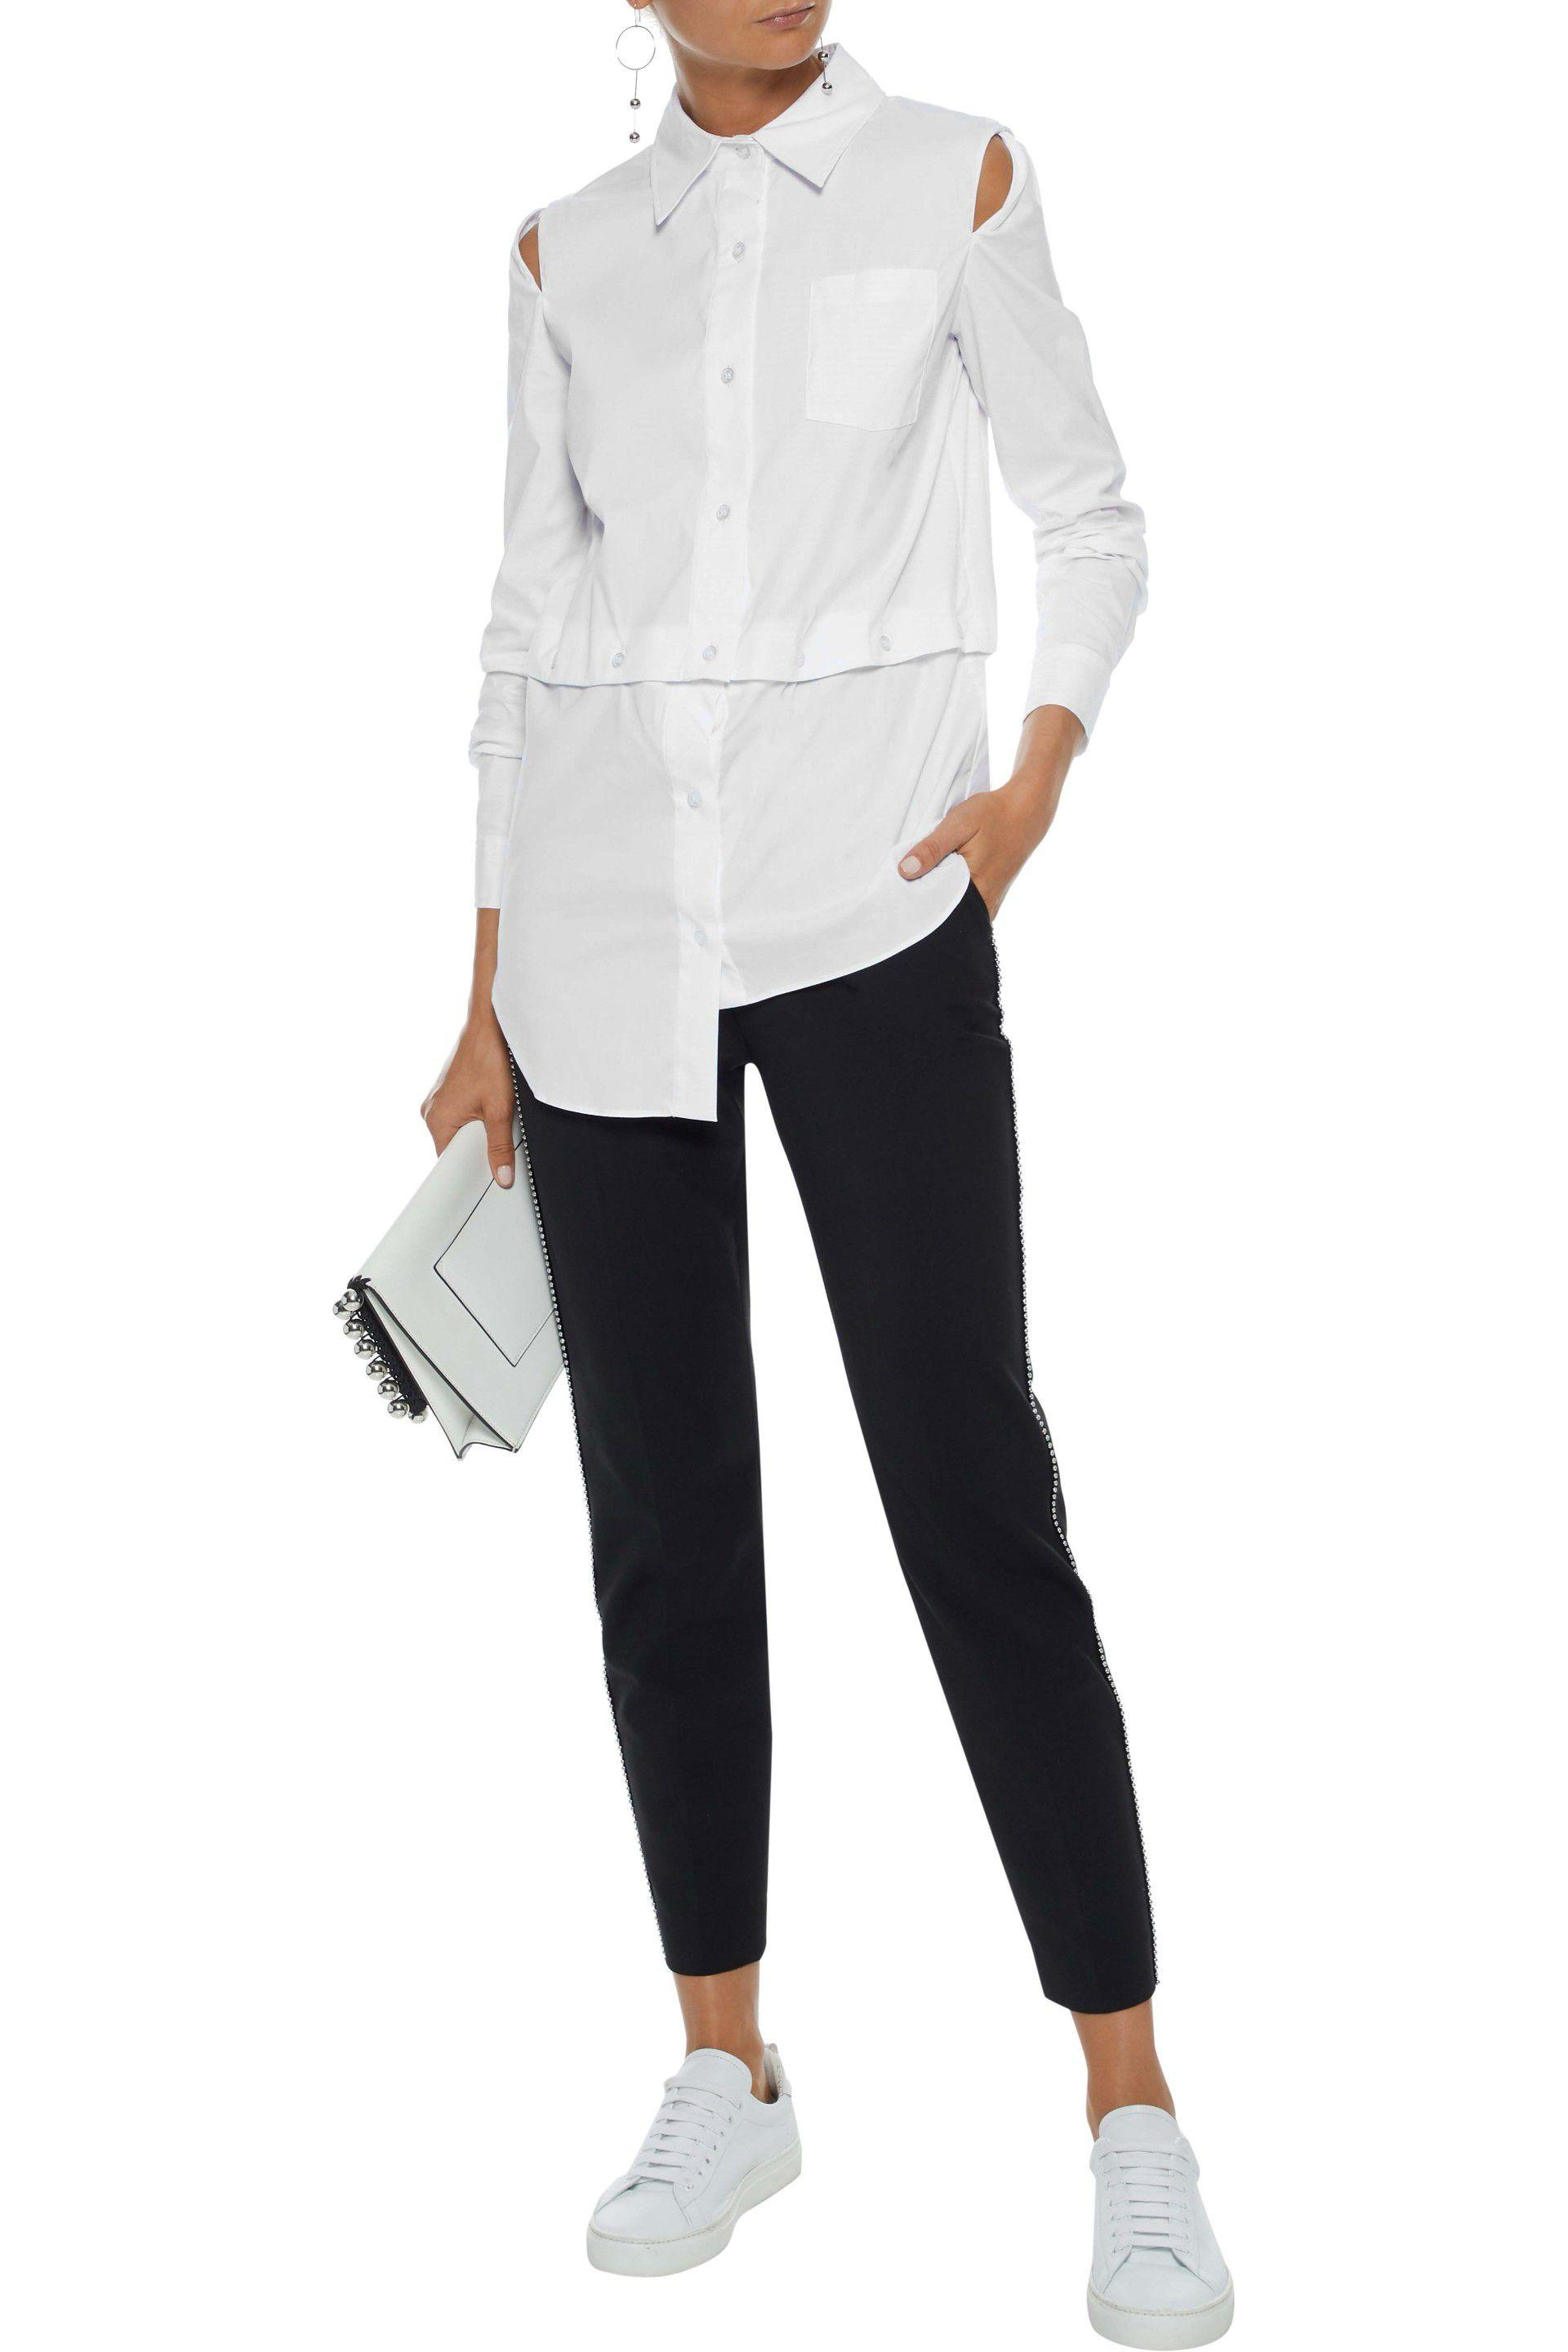 MILLY Womens Fractured Shirt